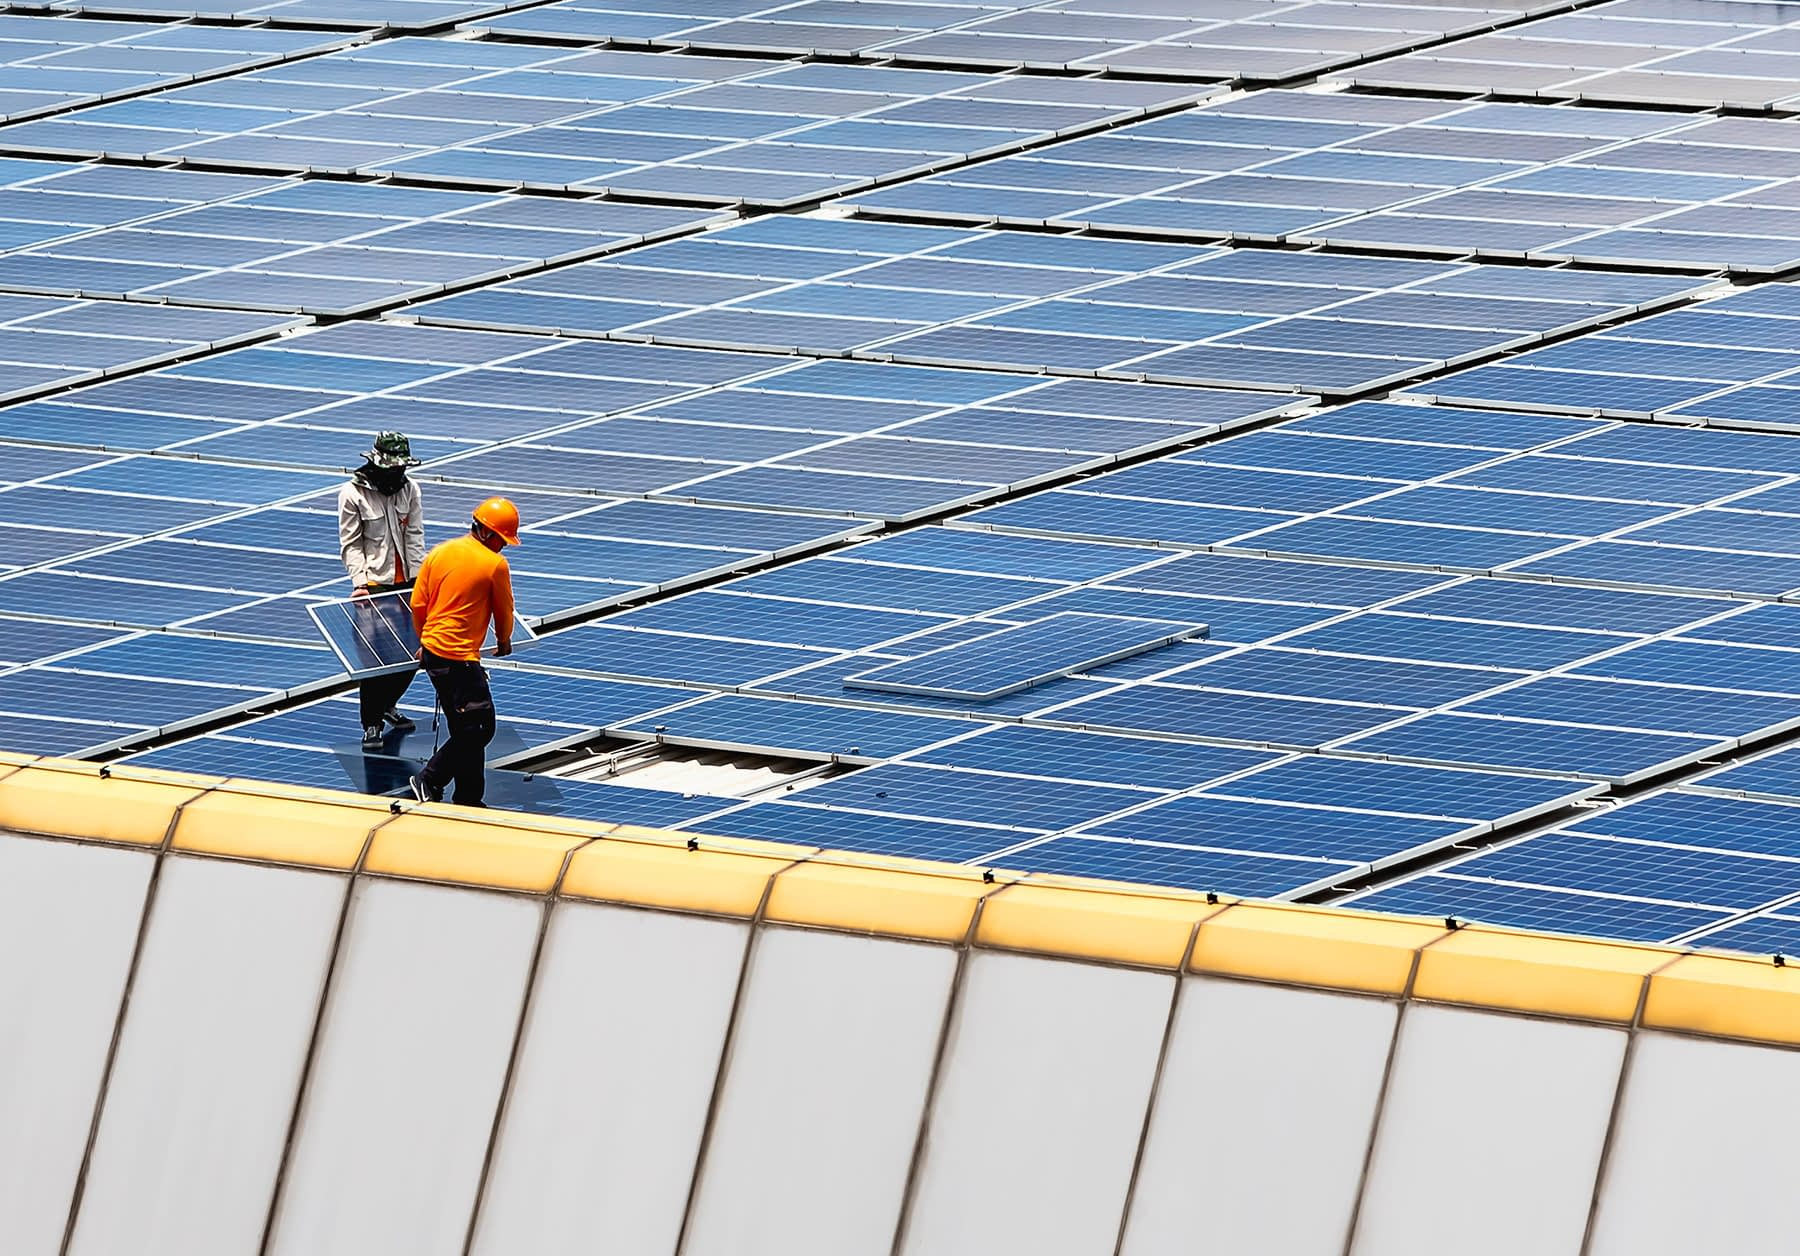 Equity for Rooftop and Ground-Mounted PV Solar Projects in Multiple Countries